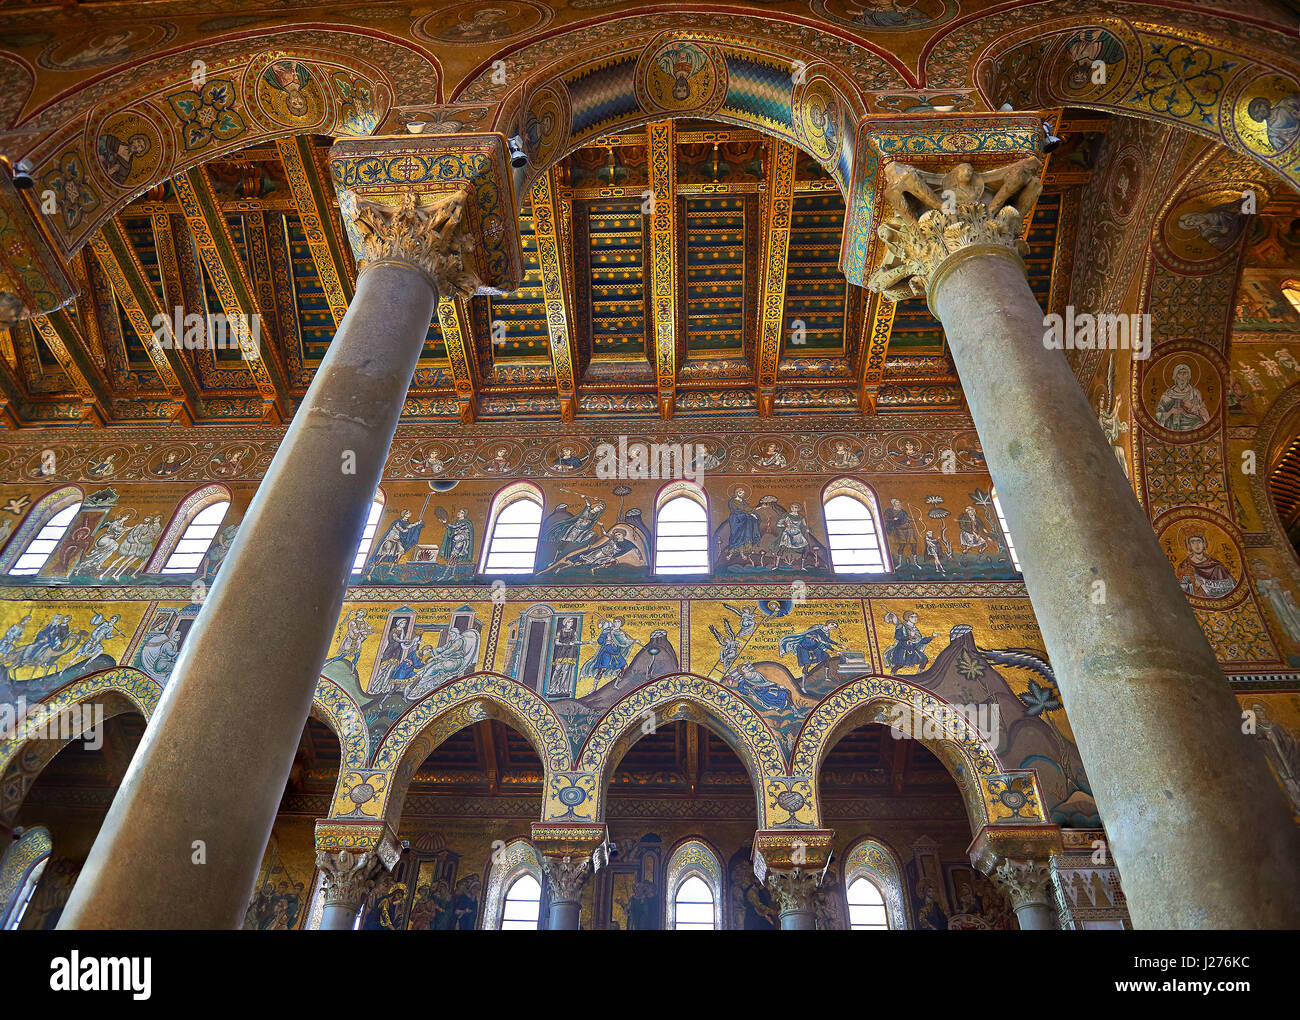 Mosaics of the Norman-Byzantine medieval cathedral  of Monreale,  province of Palermo, Sicily, Italy. - Stock Image